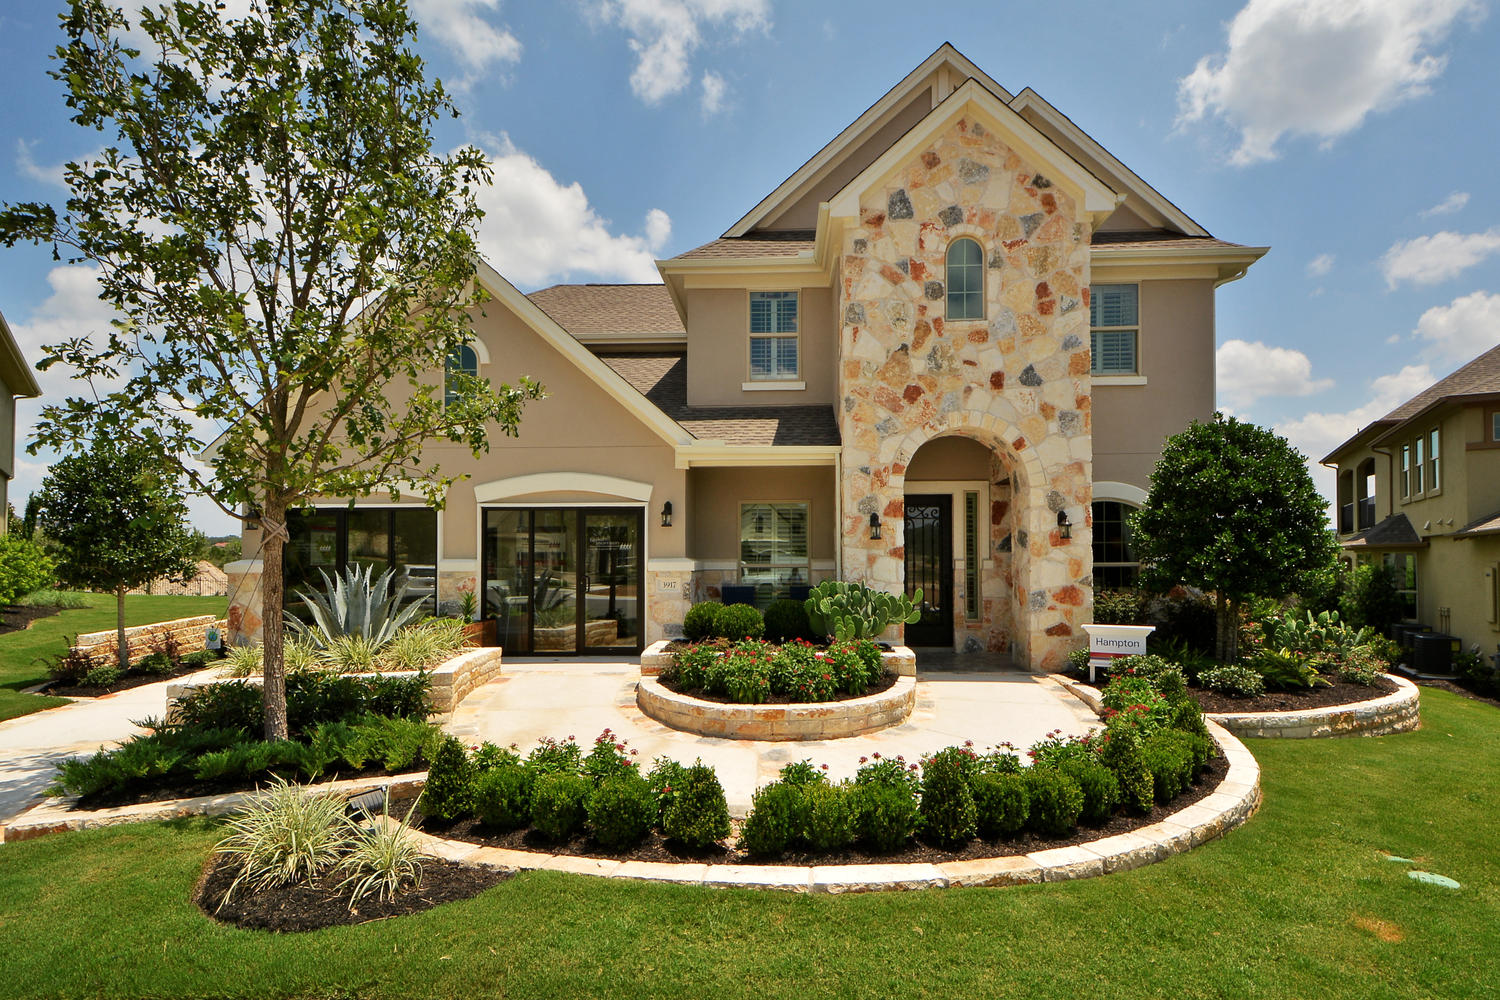 Click on image to view virtual tour of the Hampton Floor Plan available at Travisso Siena Collection in Leander, TX